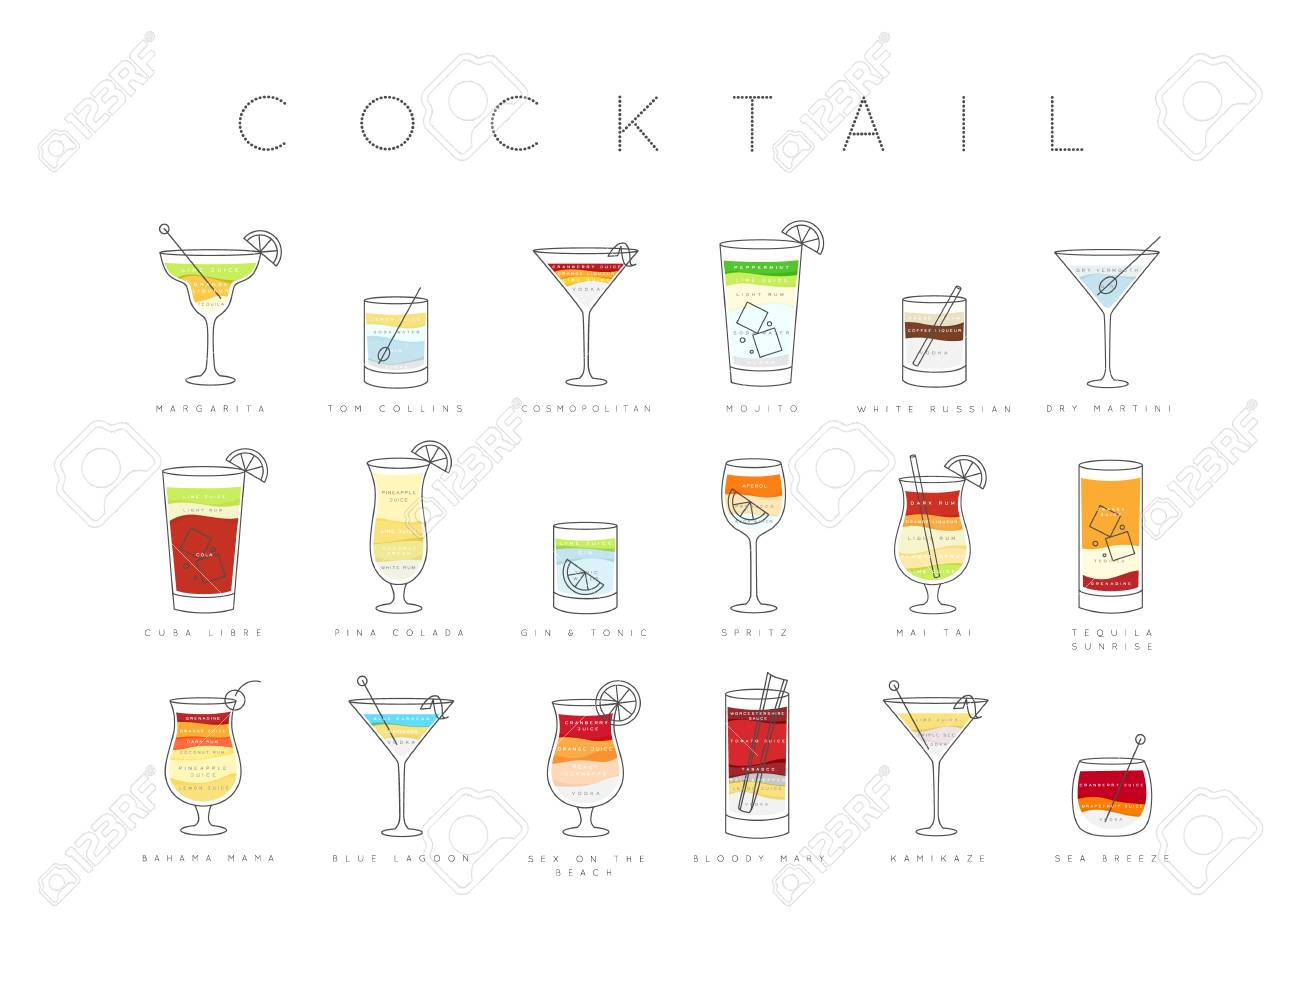 Poster flat cocktails menu with glass, recipes and names of cocktails..